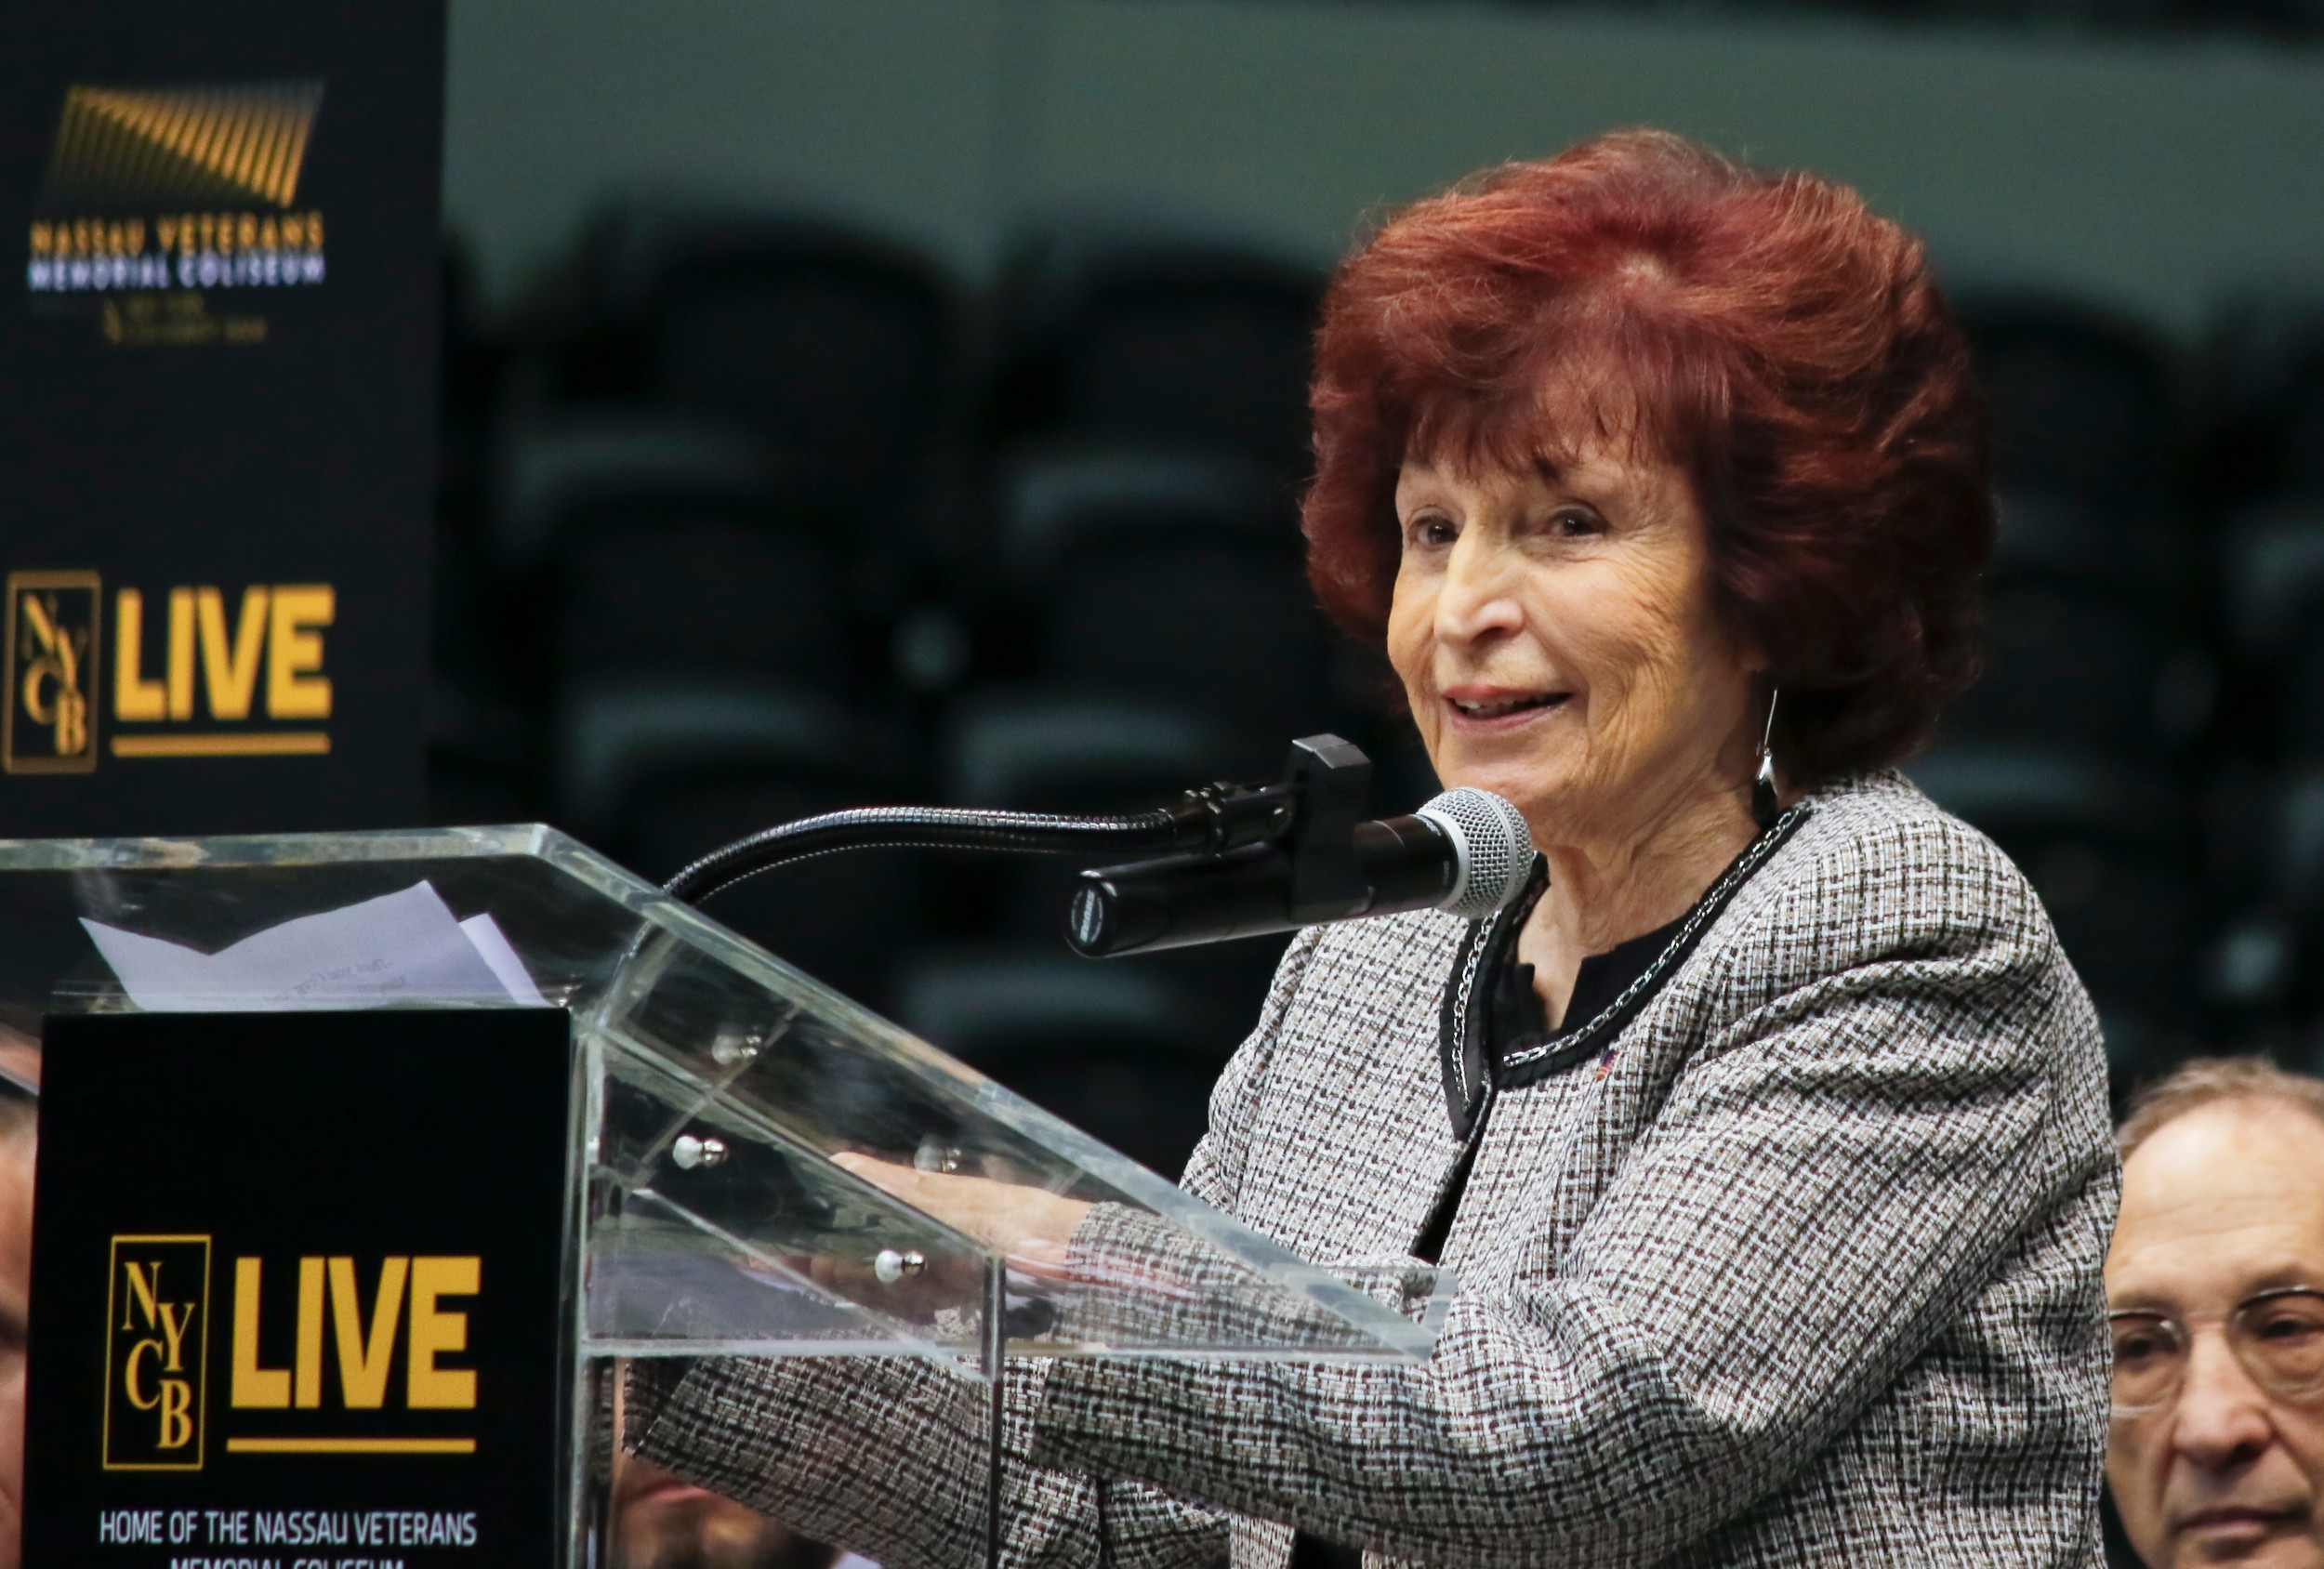 Norma Gonsalves delivered a speech at NYCB Live Nassau Veterans Memorial Coliseum's ribbon cutting in Uniondale on March 31.